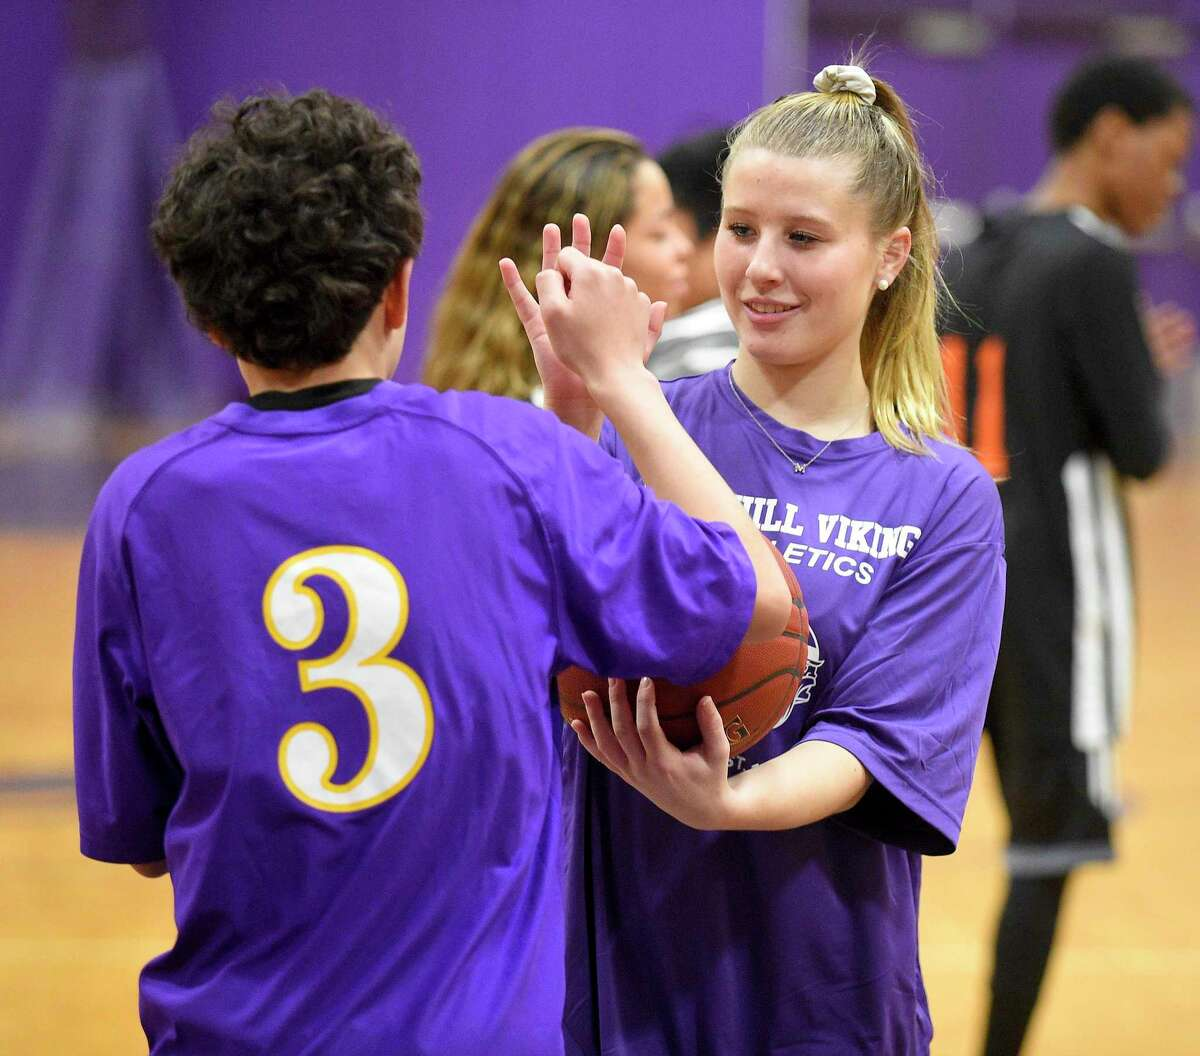 Westhill senior Malina Lasicki exchanges high fives with a participant as Stamford and Westhill Unified basketball players play to the cheers of fans attending the MLK Basketball Classic at Westhill High School in Stamford, Conn. on Feb. 1, 2020. Players on each team took to the court playing with intensity and heart as they squared up exchanging baskets back and forth. With handlers helping each of the players, shouting encouragement as they shot baskets, each participant consider a winner in every aspect of the game.